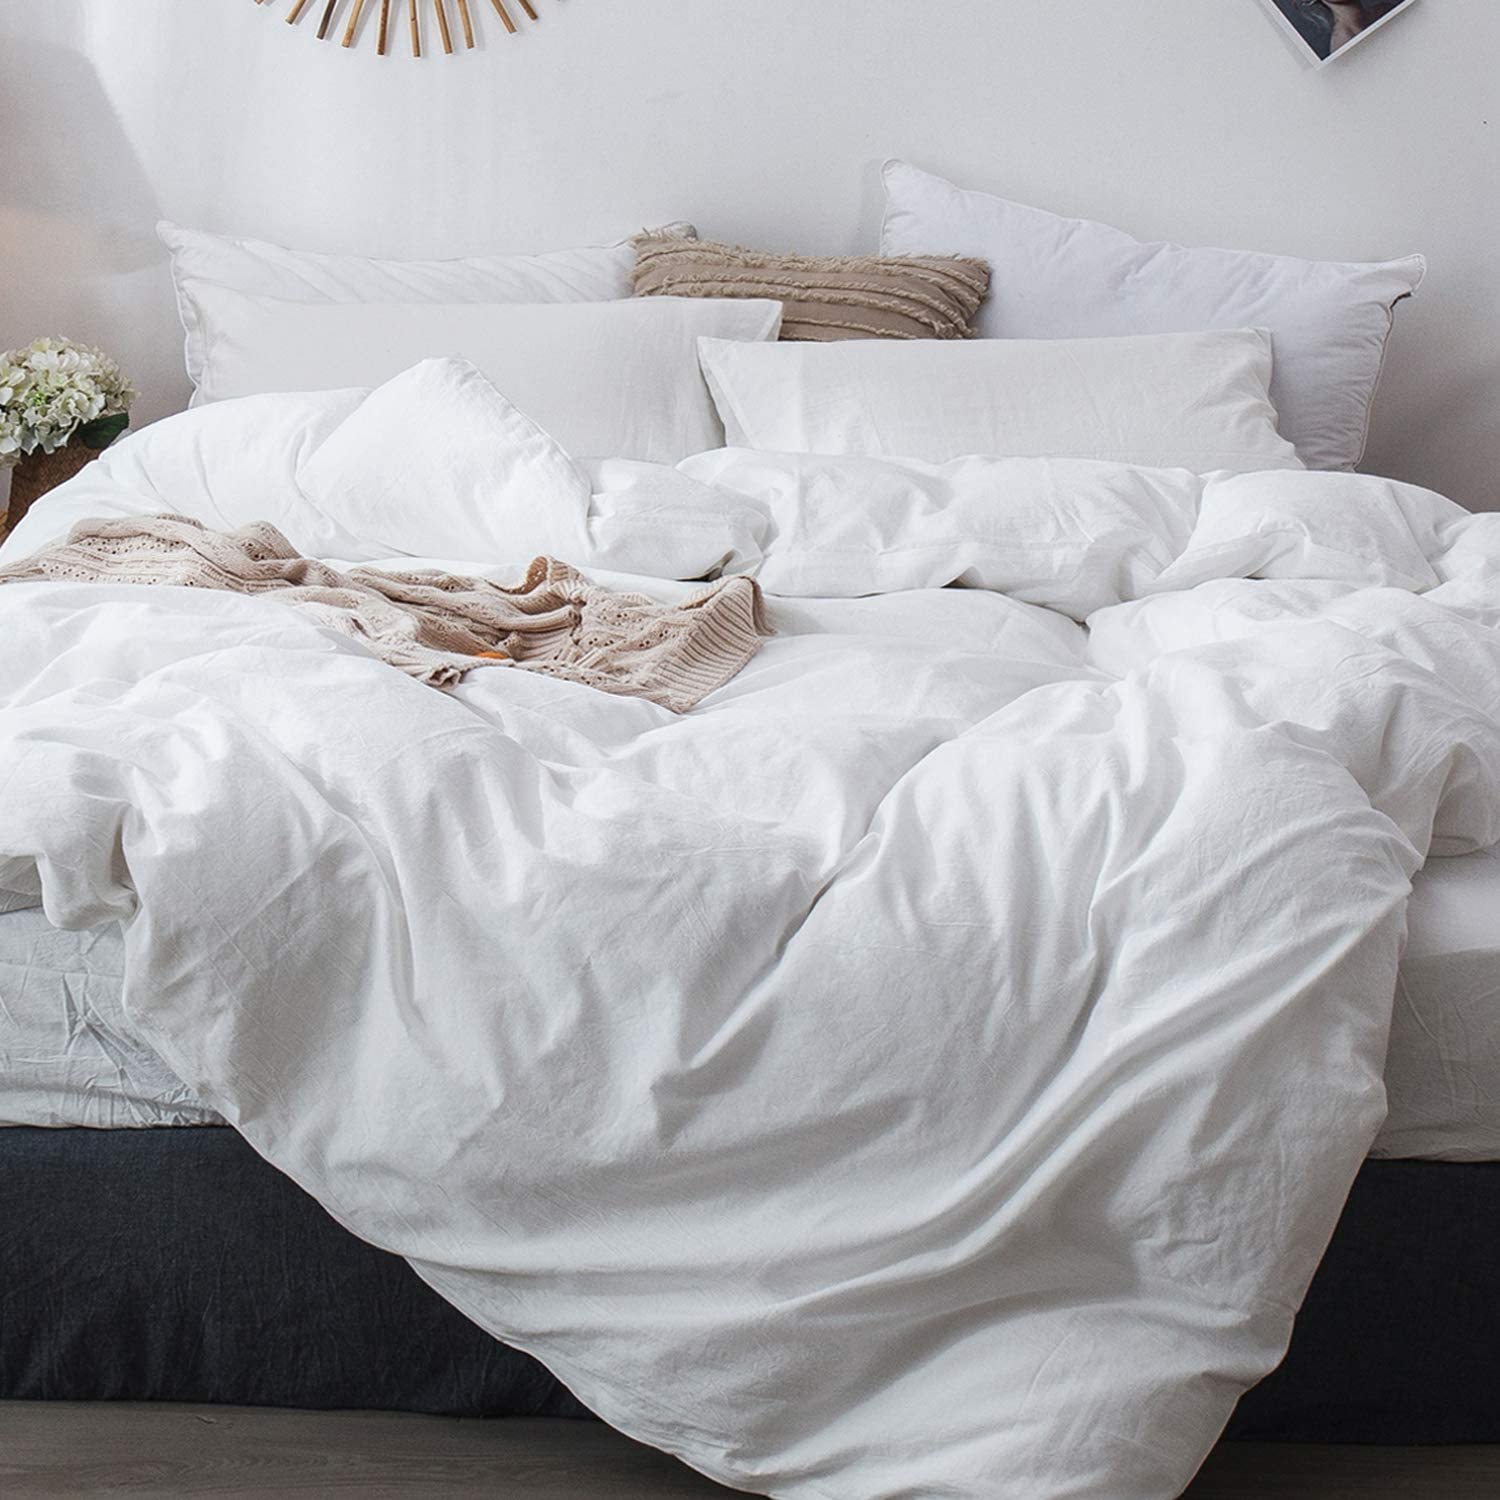 Save $5 on MooMee Duvet Cover Set 100% Washed Cotton Linen